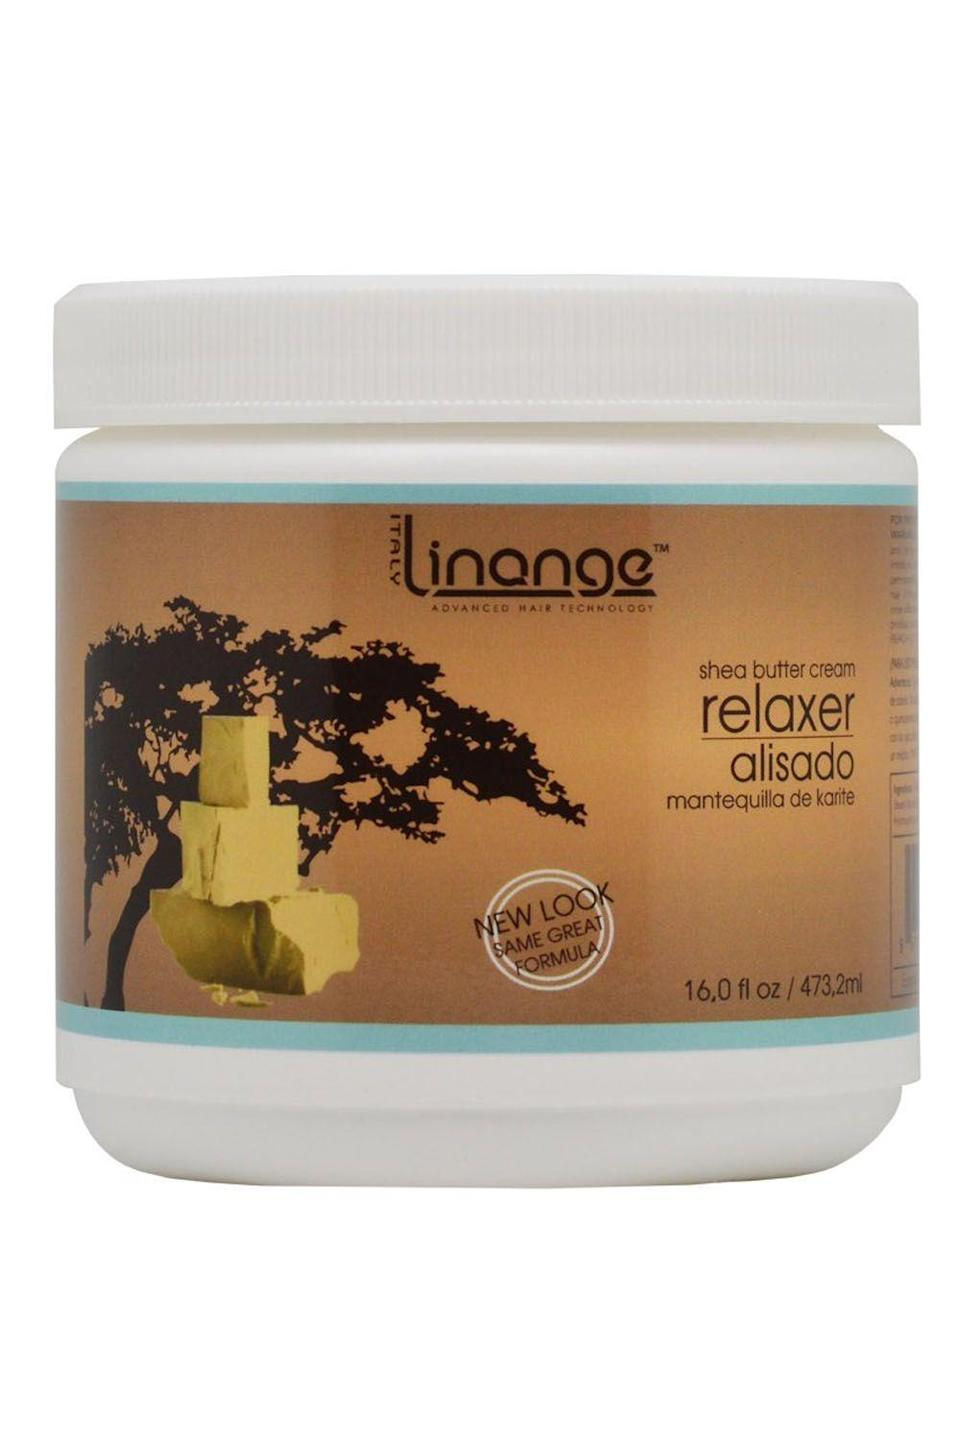 """<p><strong>LINANGE</strong></p><p>amazon.com</p><p><strong>$16.02</strong></p><p><a href=""""https://www.amazon.com/dp/B01BHAQRD0?tag=syn-yahoo-20&ascsubtag=%5Bartid%7C10049.g.33368236%5Bsrc%7Cyahoo-us"""" rel=""""nofollow noopener"""" target=""""_blank"""" data-ylk=""""slk:Shop Now"""" class=""""link rapid-noclick-resp"""">Shop Now</a></p><p>Instead of leaving your hair flat, limp, and brittle, this hair relaxer <strong>loosens up your texture without taking away any <a href=""""https://www.cosmopolitan.com/style-beauty/beauty/advice/g2769/volume-hair-products/"""" rel=""""nofollow noopener"""" target=""""_blank"""" data-ylk=""""slk:volume"""" class=""""link rapid-noclick-resp"""">volume</a> or fullness.</strong> The formula (which is also full of shea butter and coconut oil—sensing a trend?) will make your hair so silky, bouncy, and full of body, you'll basically belong in a hair commercial.</p>"""